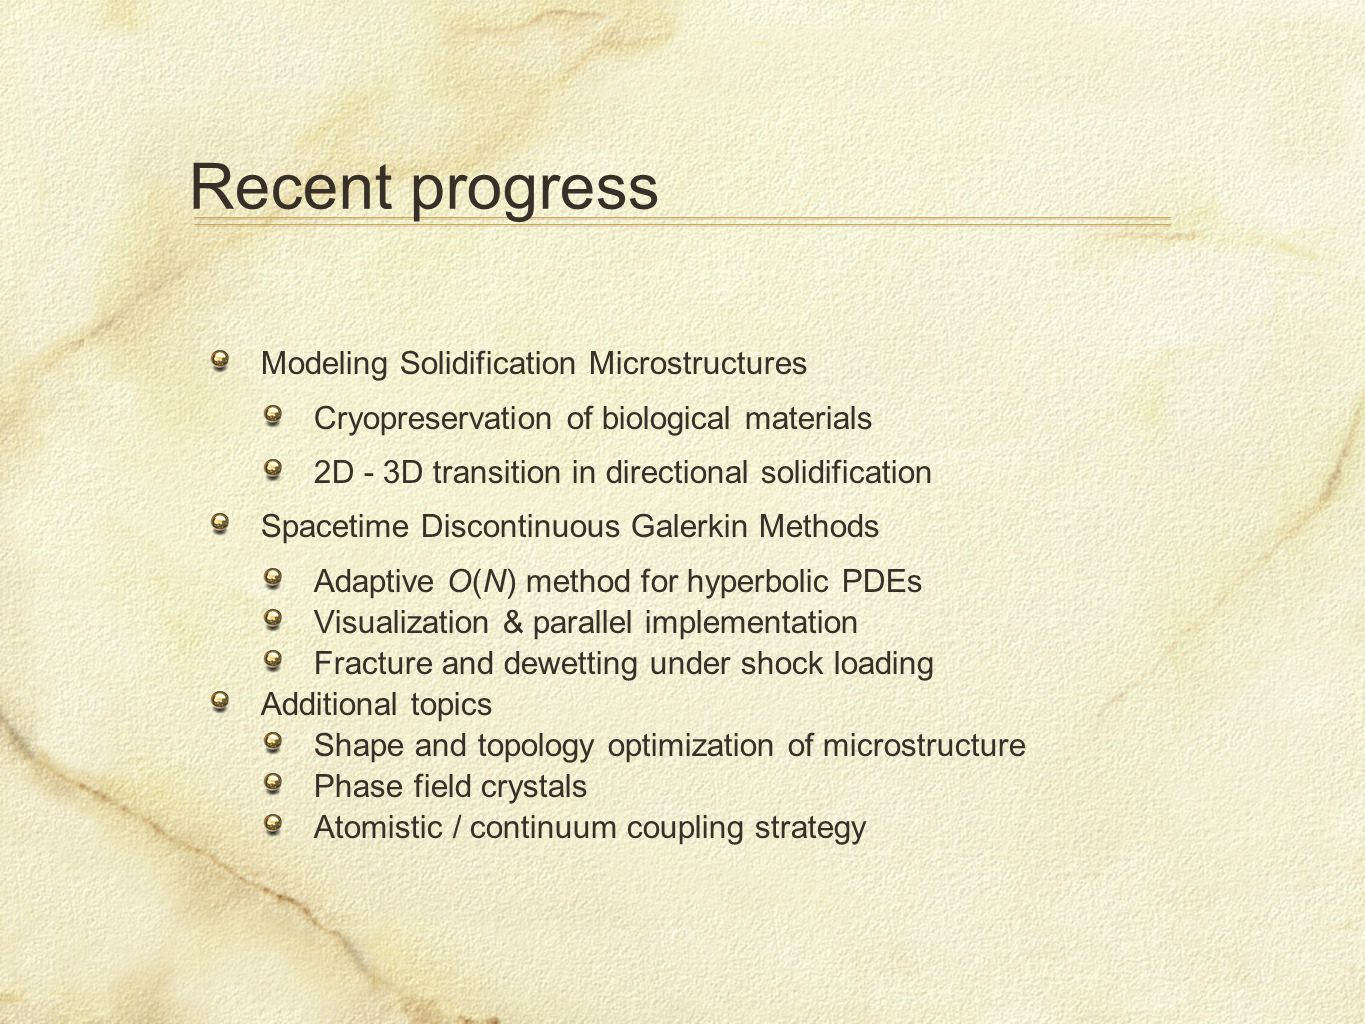 Recent progress Modeling Solidification Microstructures Cryopreservation of biological materials 2D - 3D transition in directional solidification Spacetime Discontinuous Galerkin Methods Adaptive O(N) method for hyperbolic PDEs Visualization & parallel implementation Fracture and dewetting under shock loading Additional topics Shape and topology optimization of microstructure Phase field crystals Atomistic / continuum coupling strategy